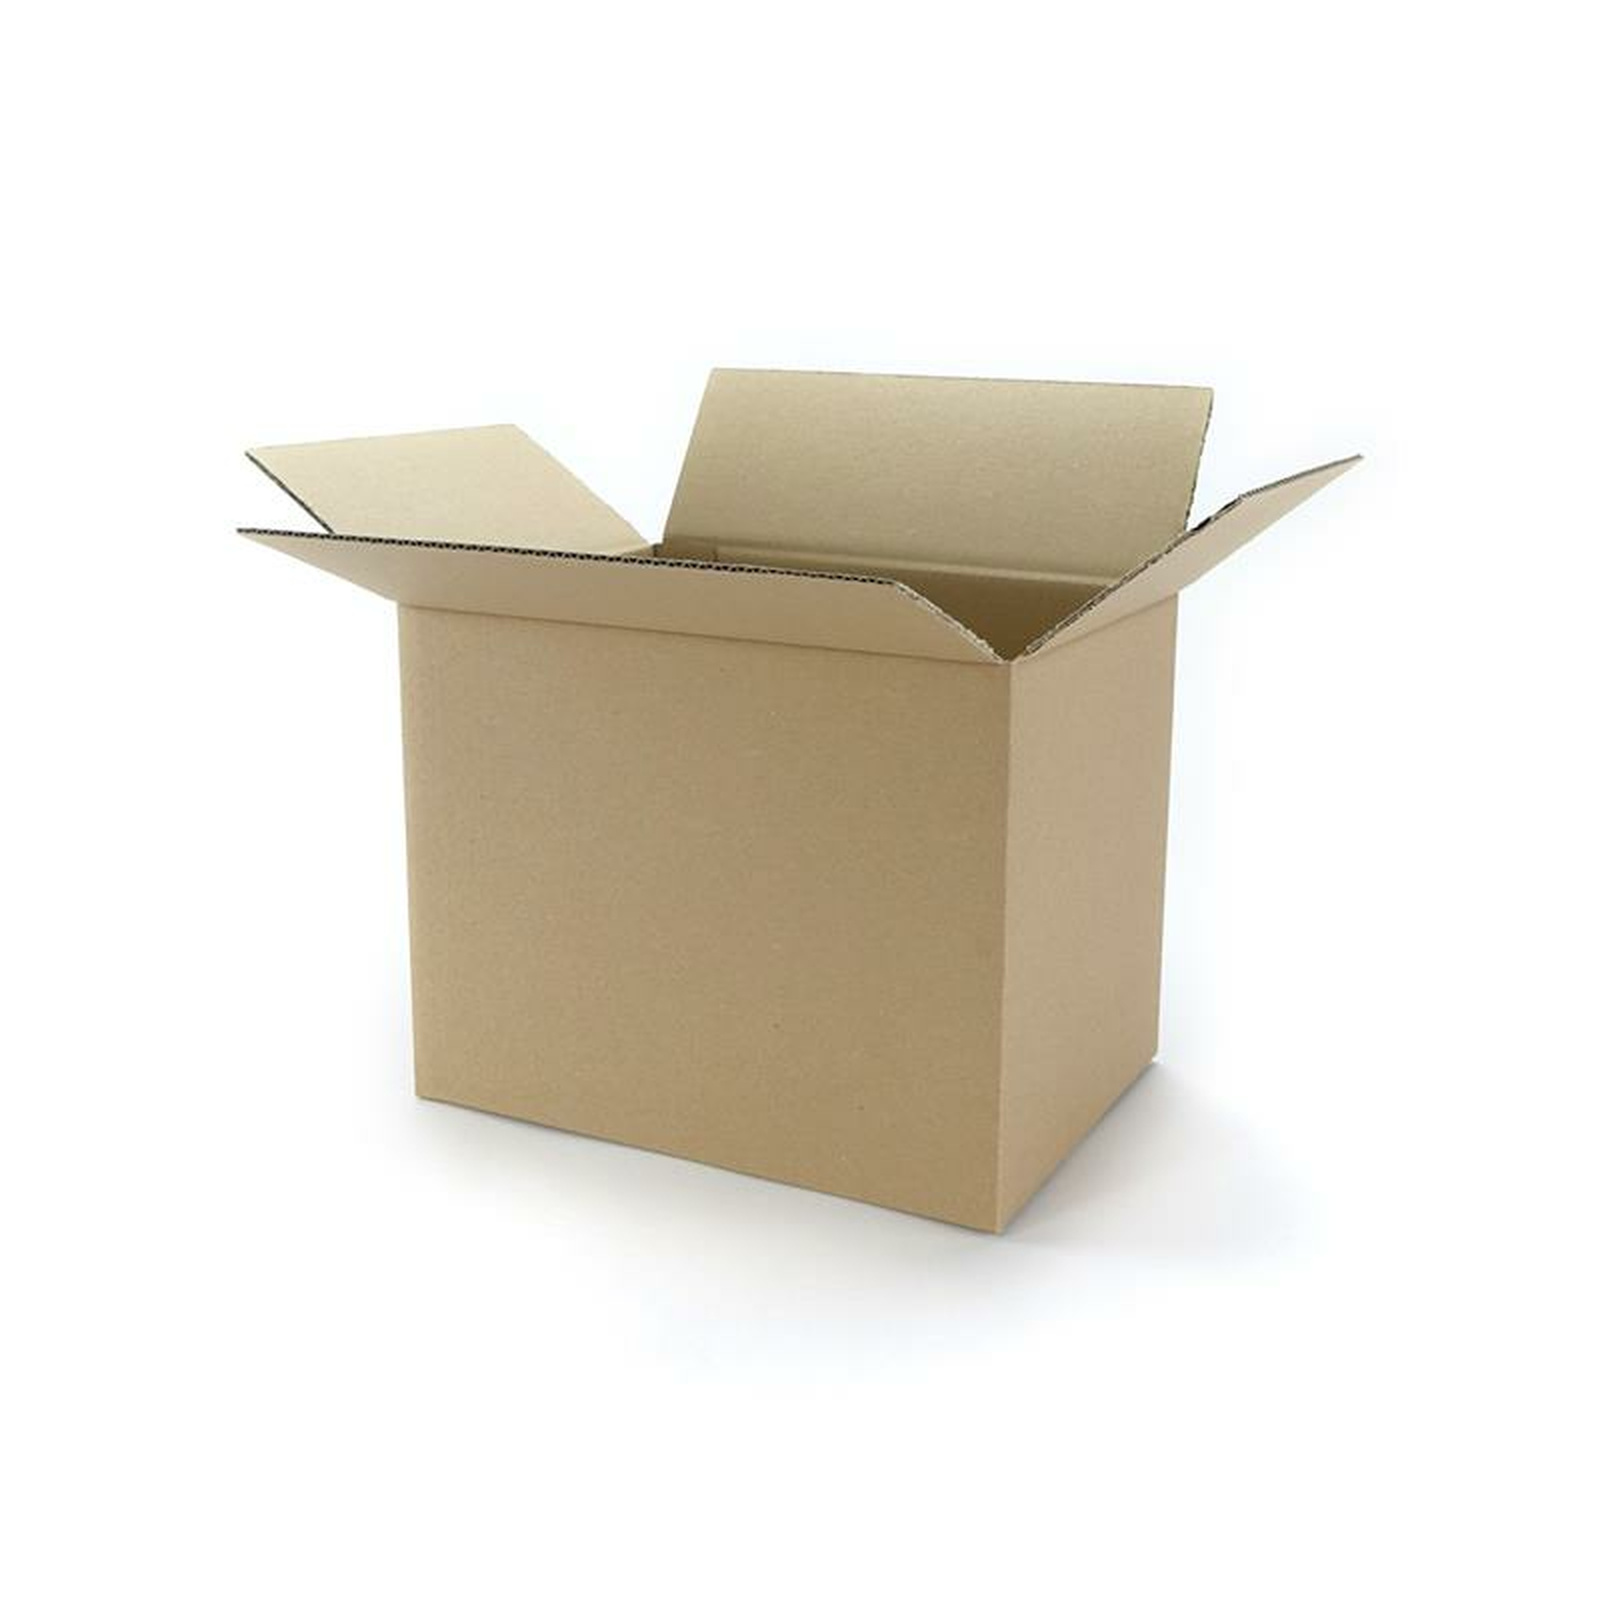 300x215x240 Mm Single Wall Cardboard Boxes At Low Cost 0 31